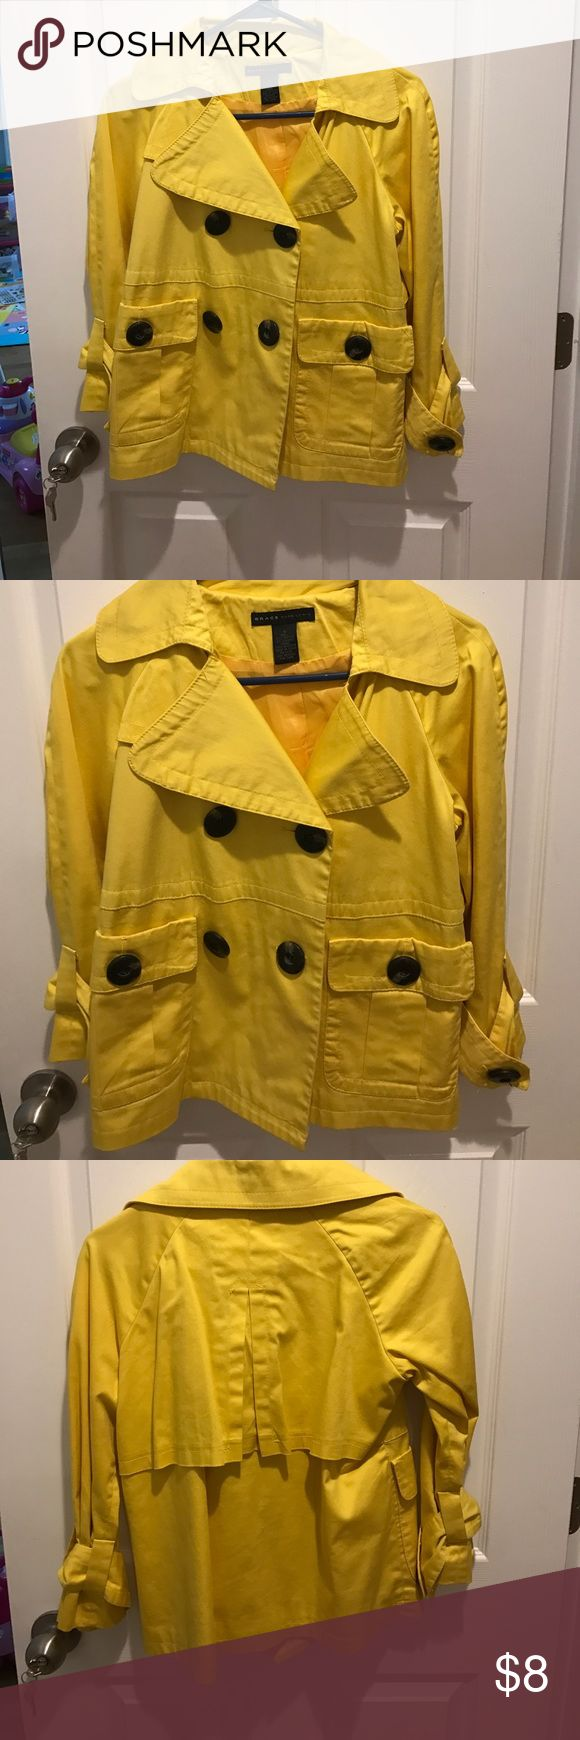 Yellow peacoat Yellow women's peacoat with large buttons Grace Jackets & Coats Pea Coats